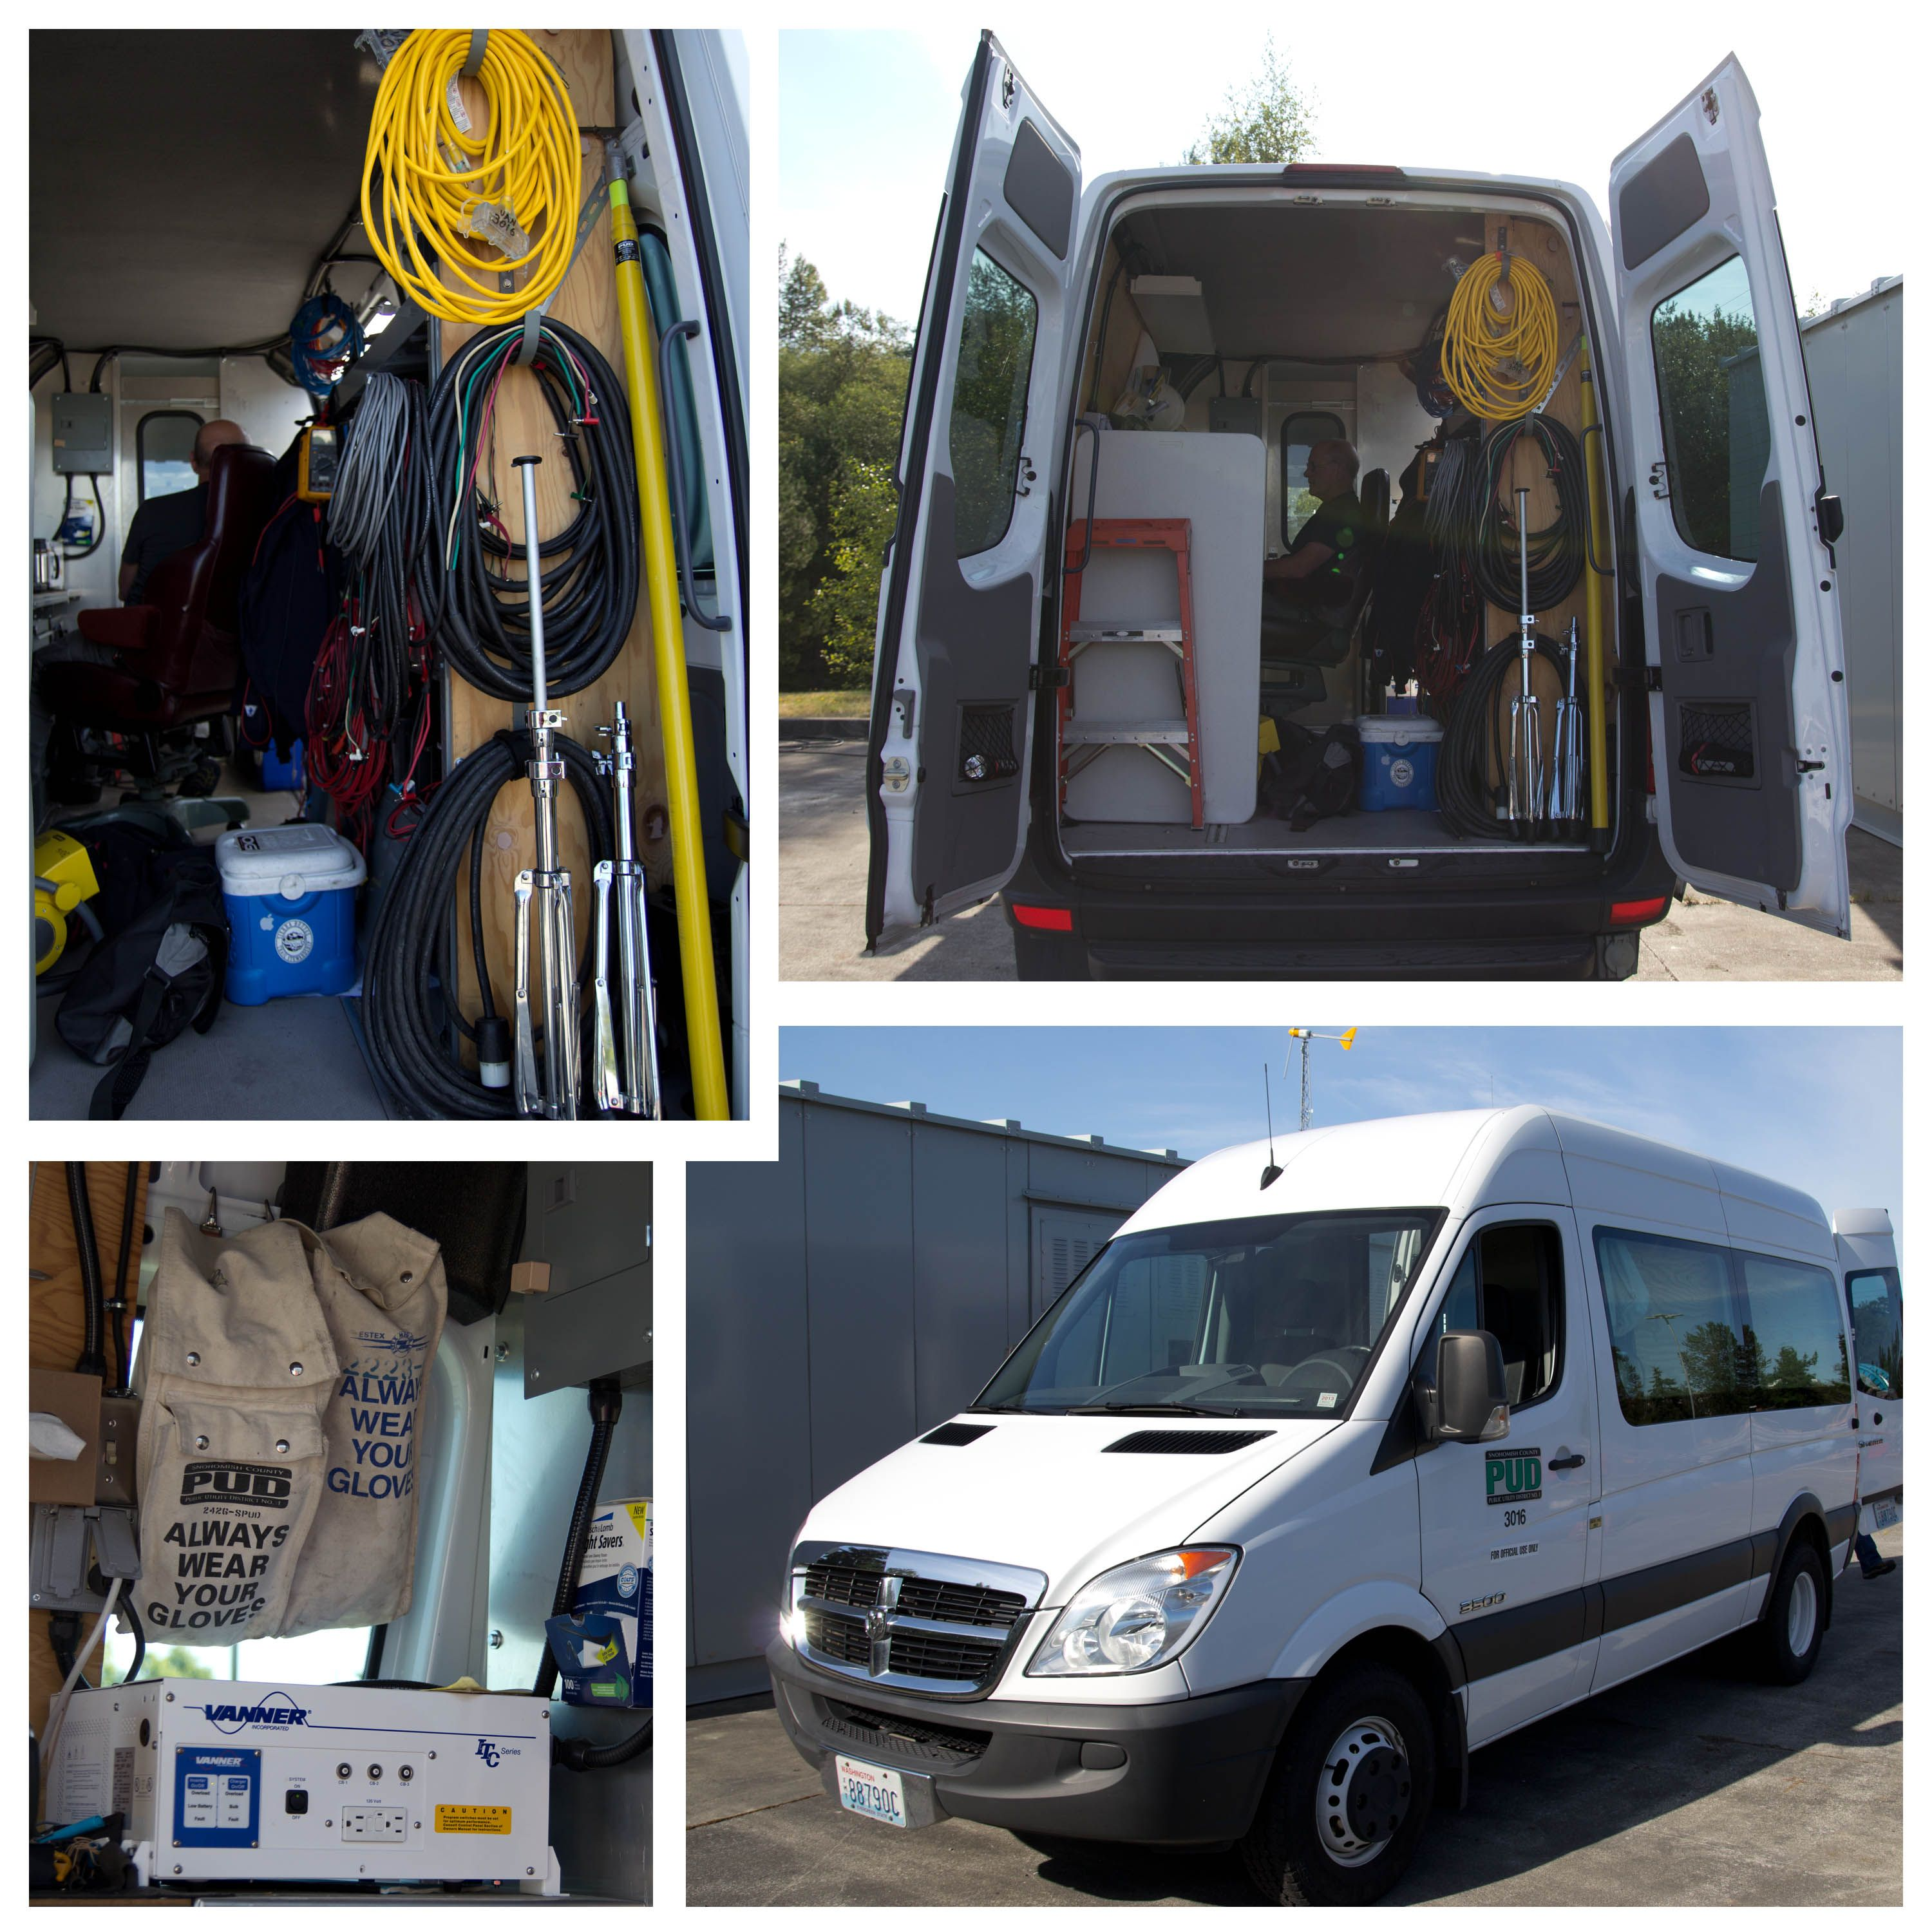 Vehicle  Is Sprinter Van With Special Outfitting To Aid - Vehicle relay testing